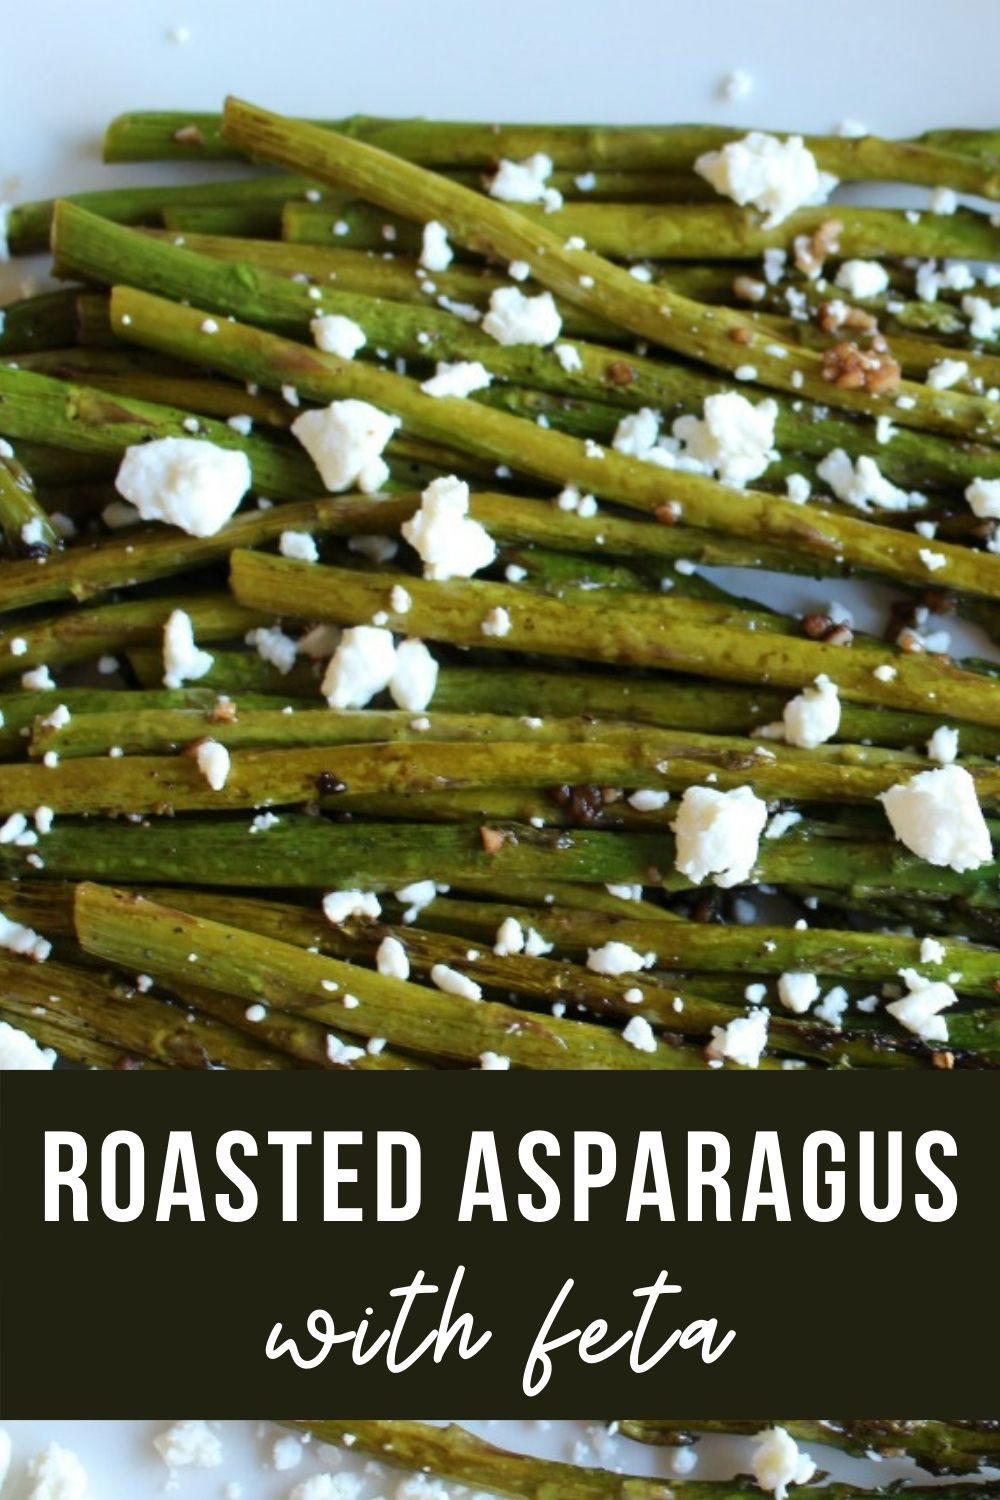 Platter of roasted asparagus with feta cheese